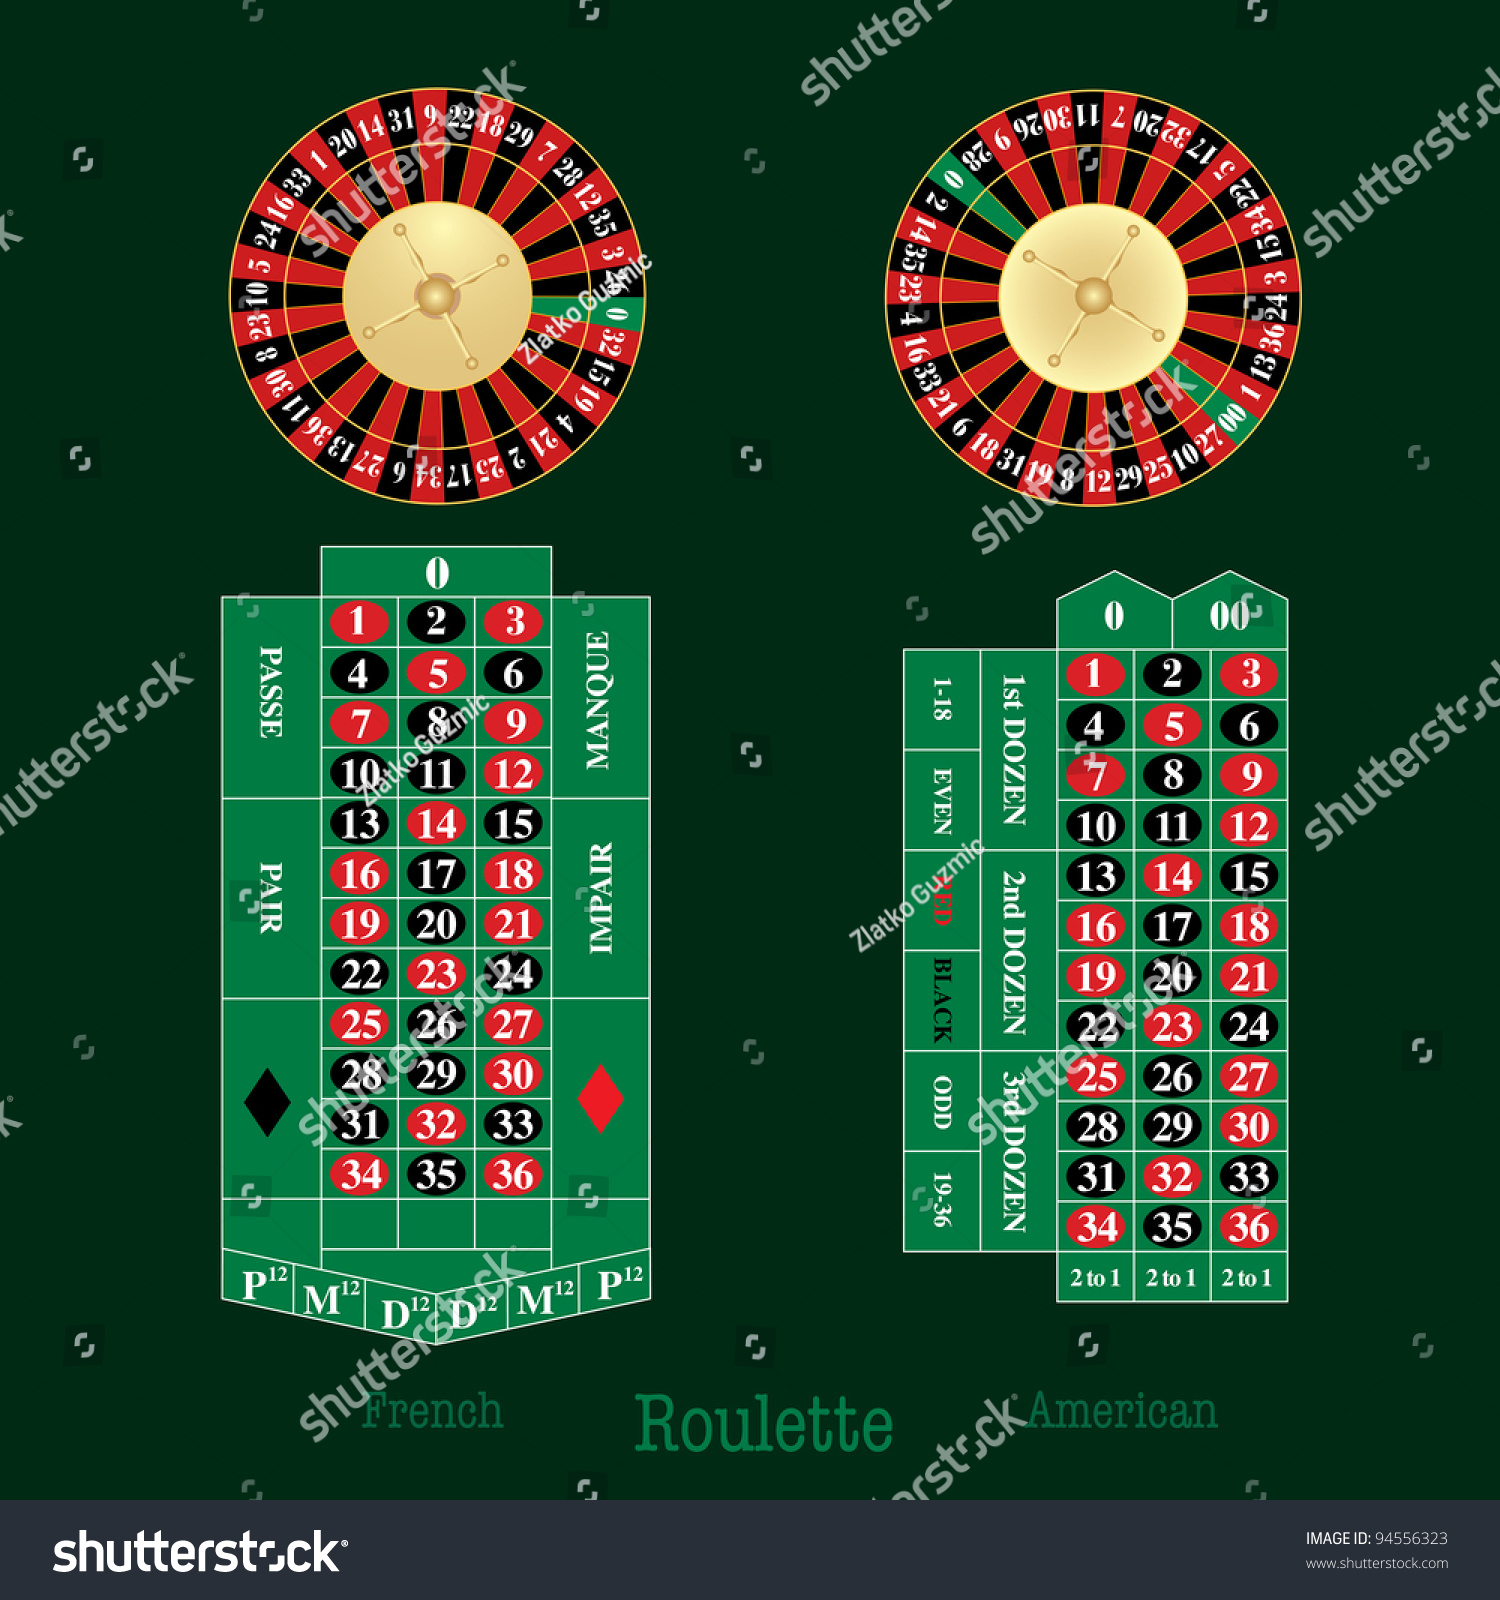 Traditional european roulette table vector illustration stock vector - Vector Layout Of French And American Roulette Table And Wheel